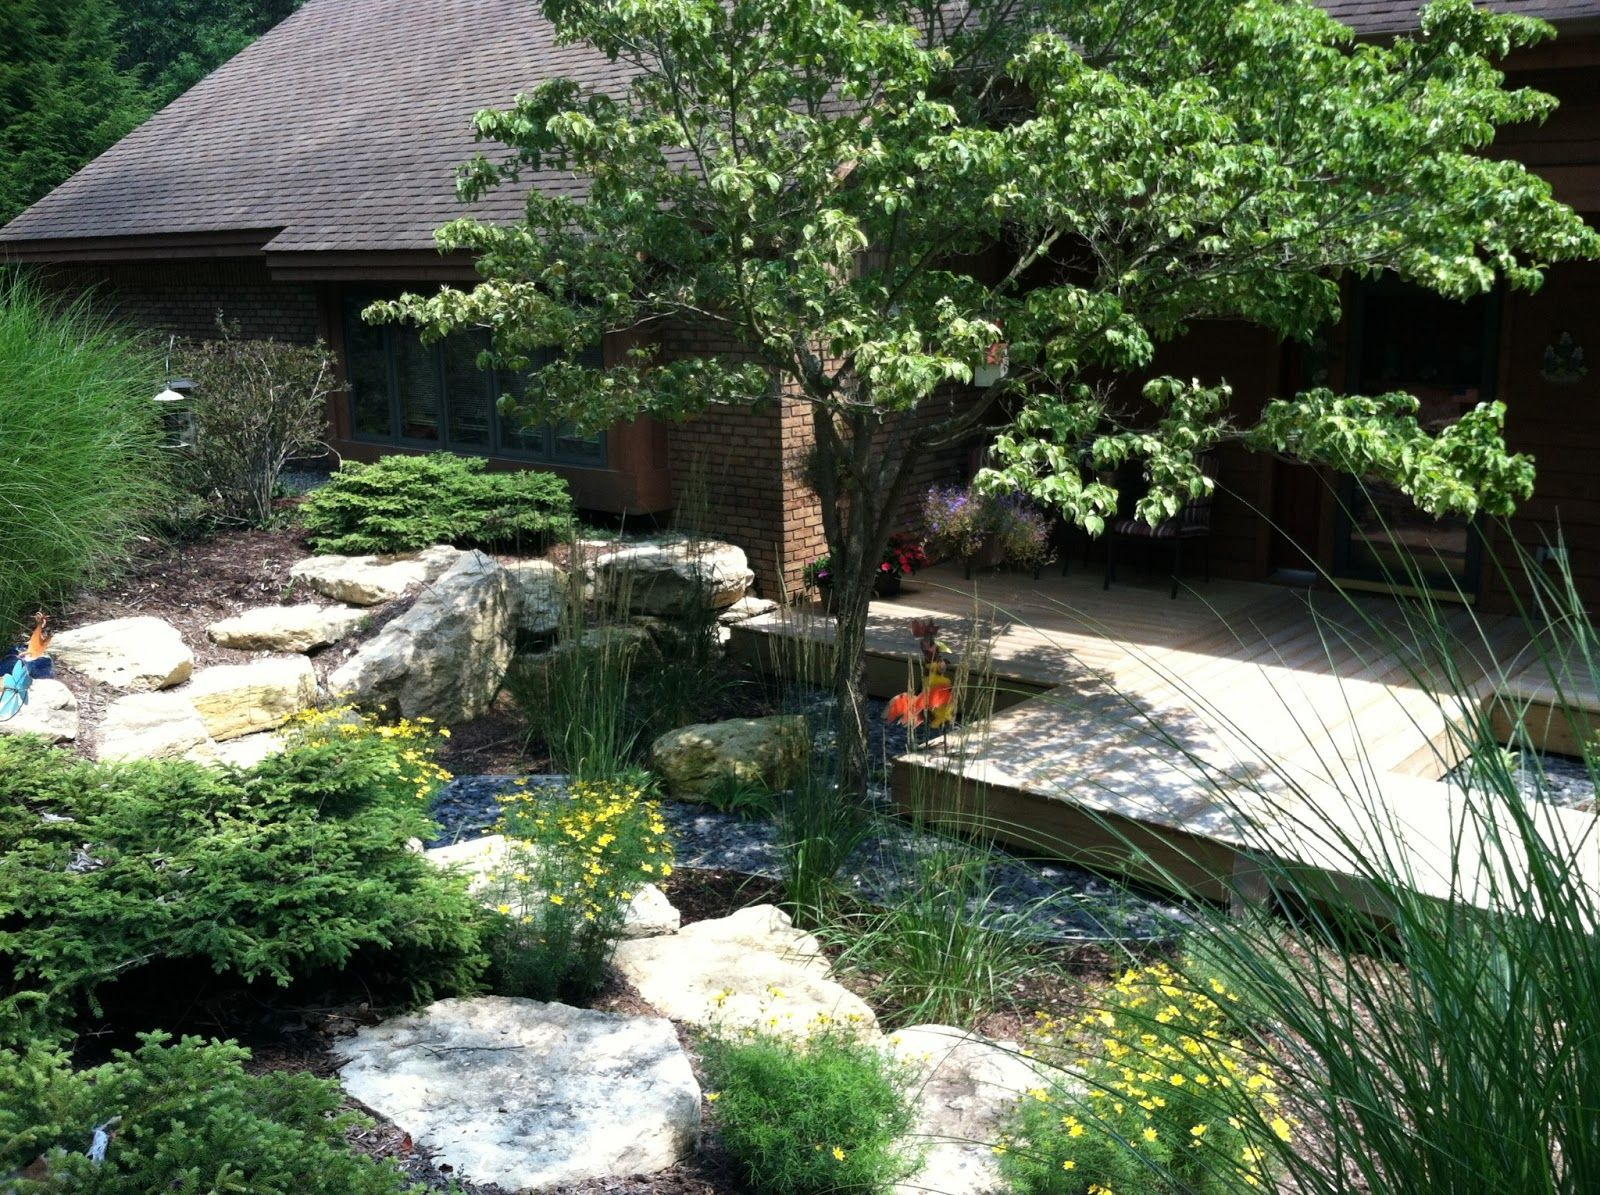 Pretentious Backyard Post Backyard Designs Appeared On Home Backyard Post Backyard Designs Appeared Small Backyard Designs Backyard Landscape Designs